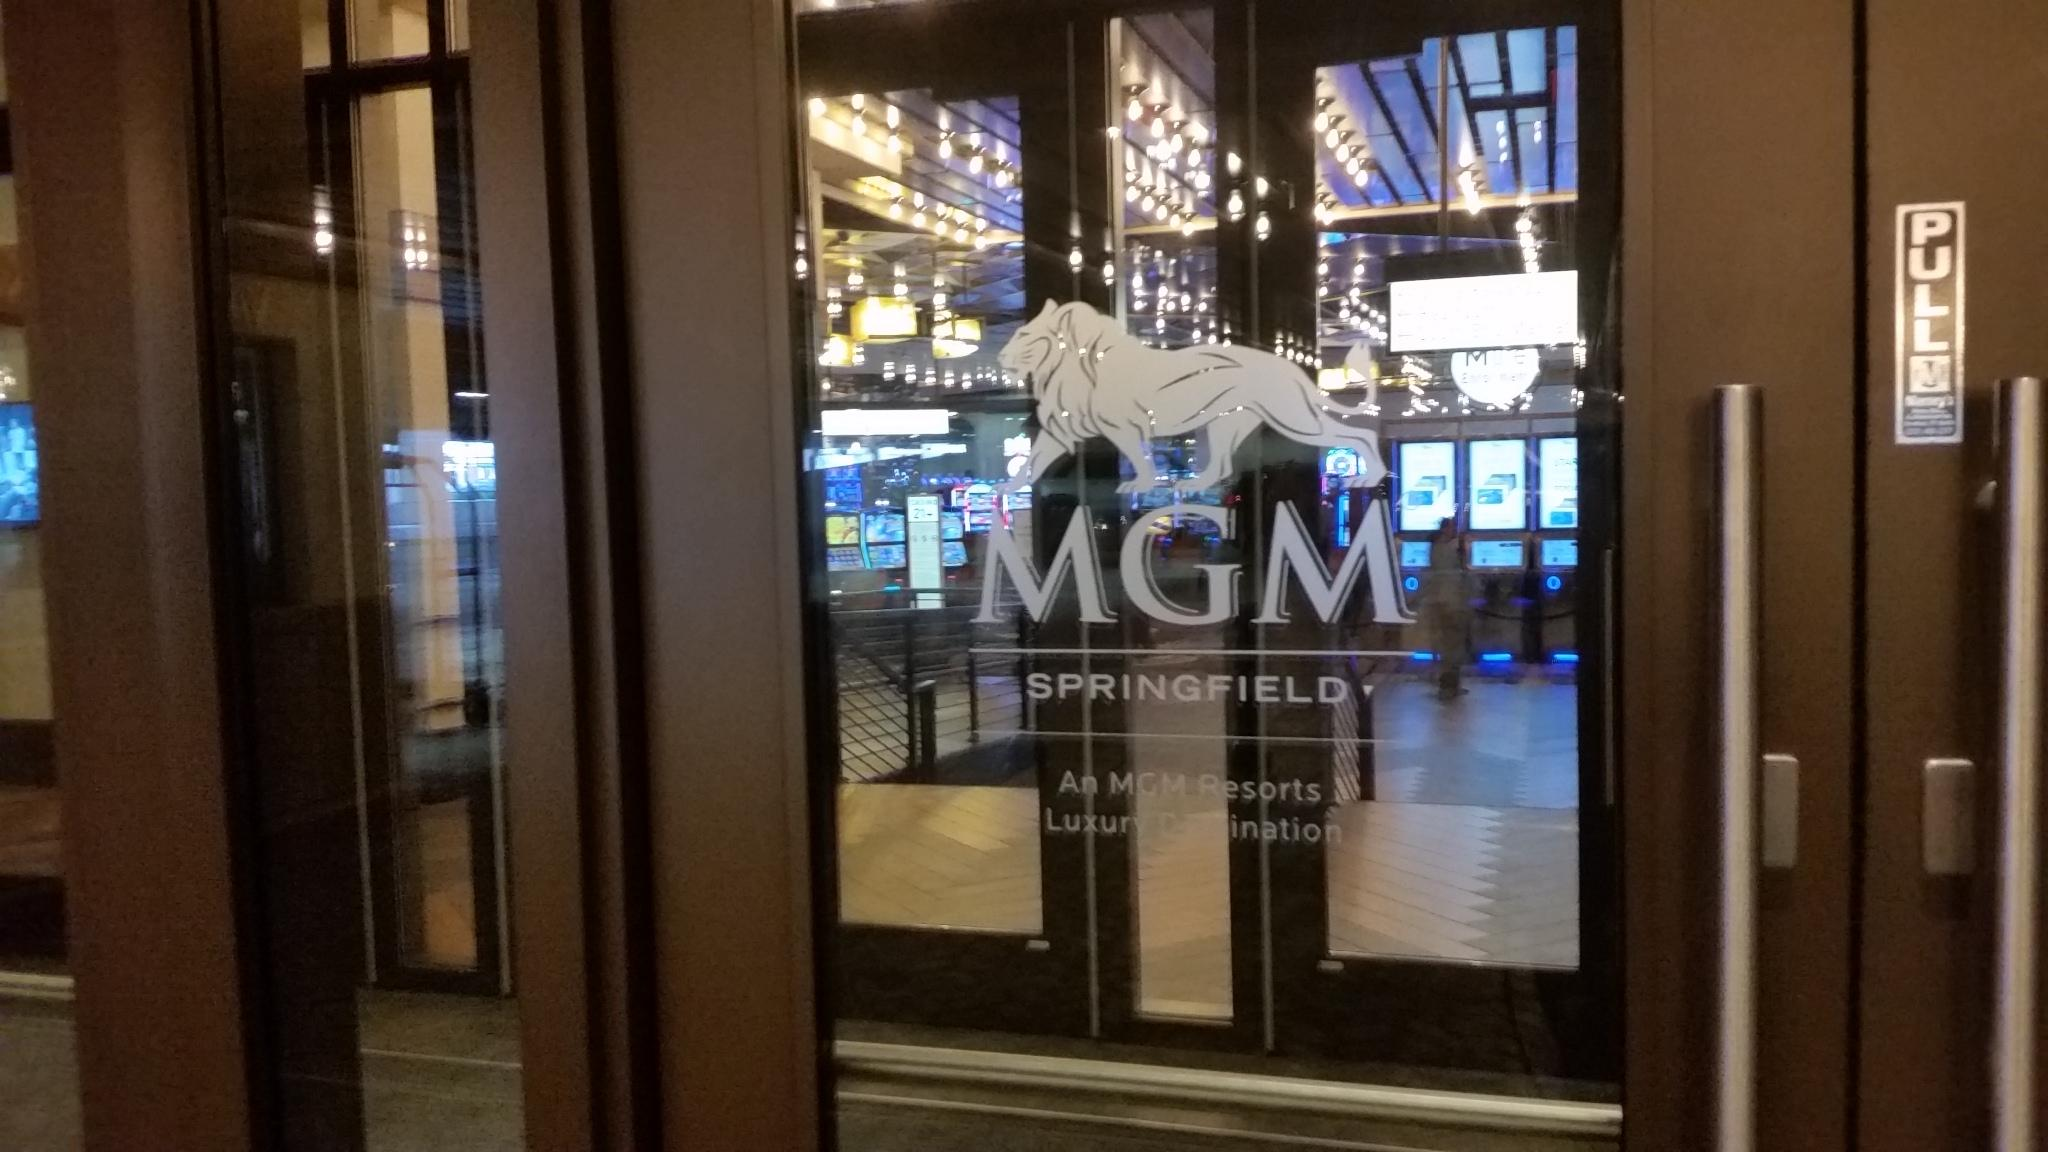 Mgm Gives Media A Look Inside Massachusetts First Resort